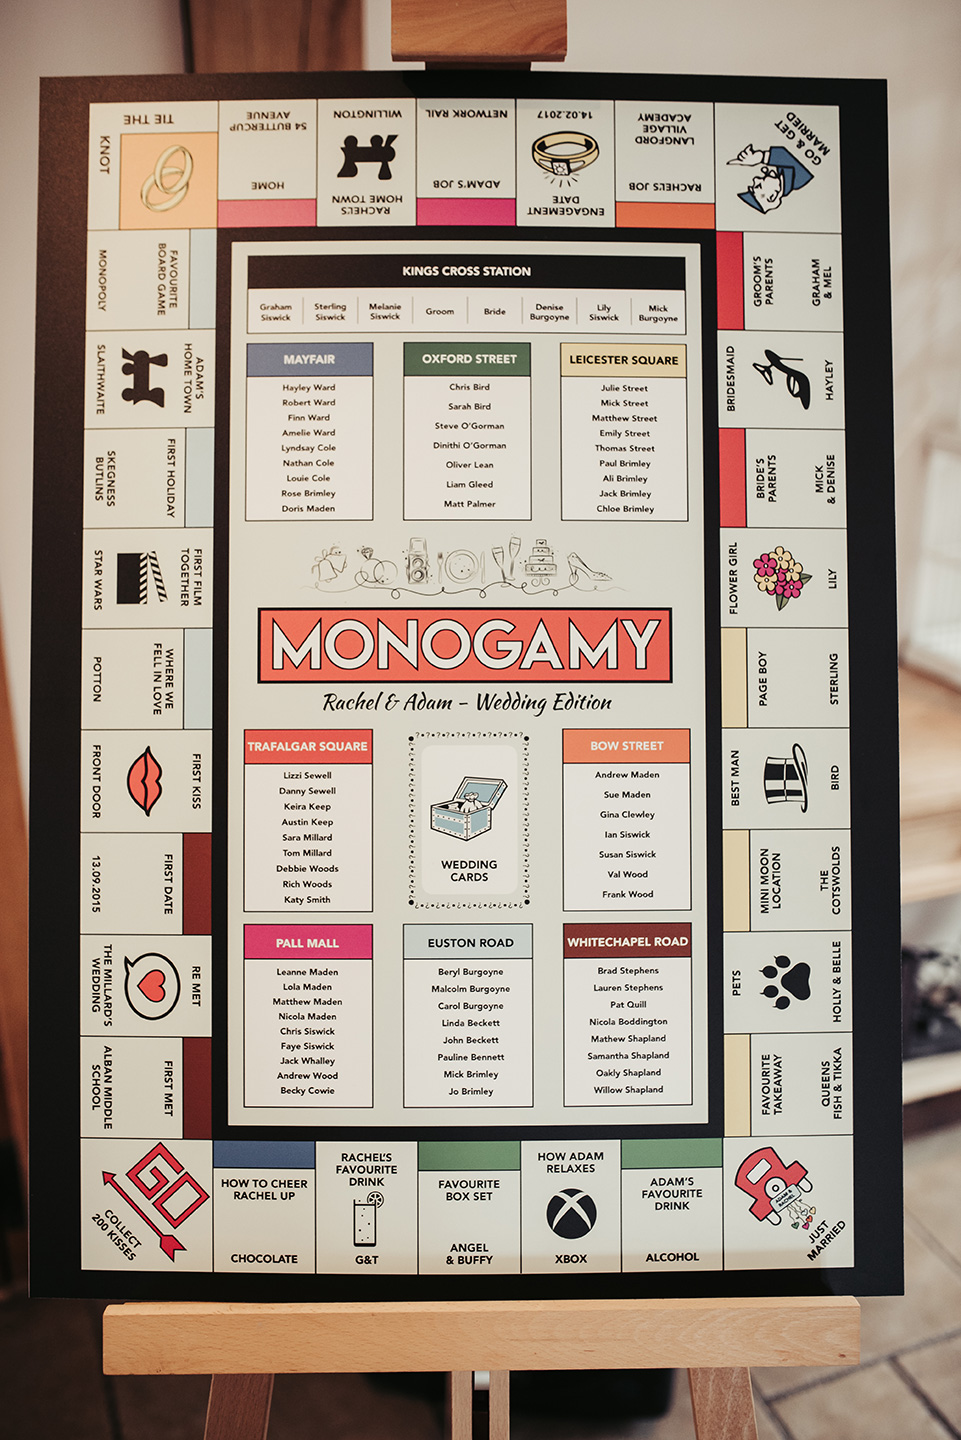 The couple had a monopoly wedding theme to decorate the tables, inspired by the board game